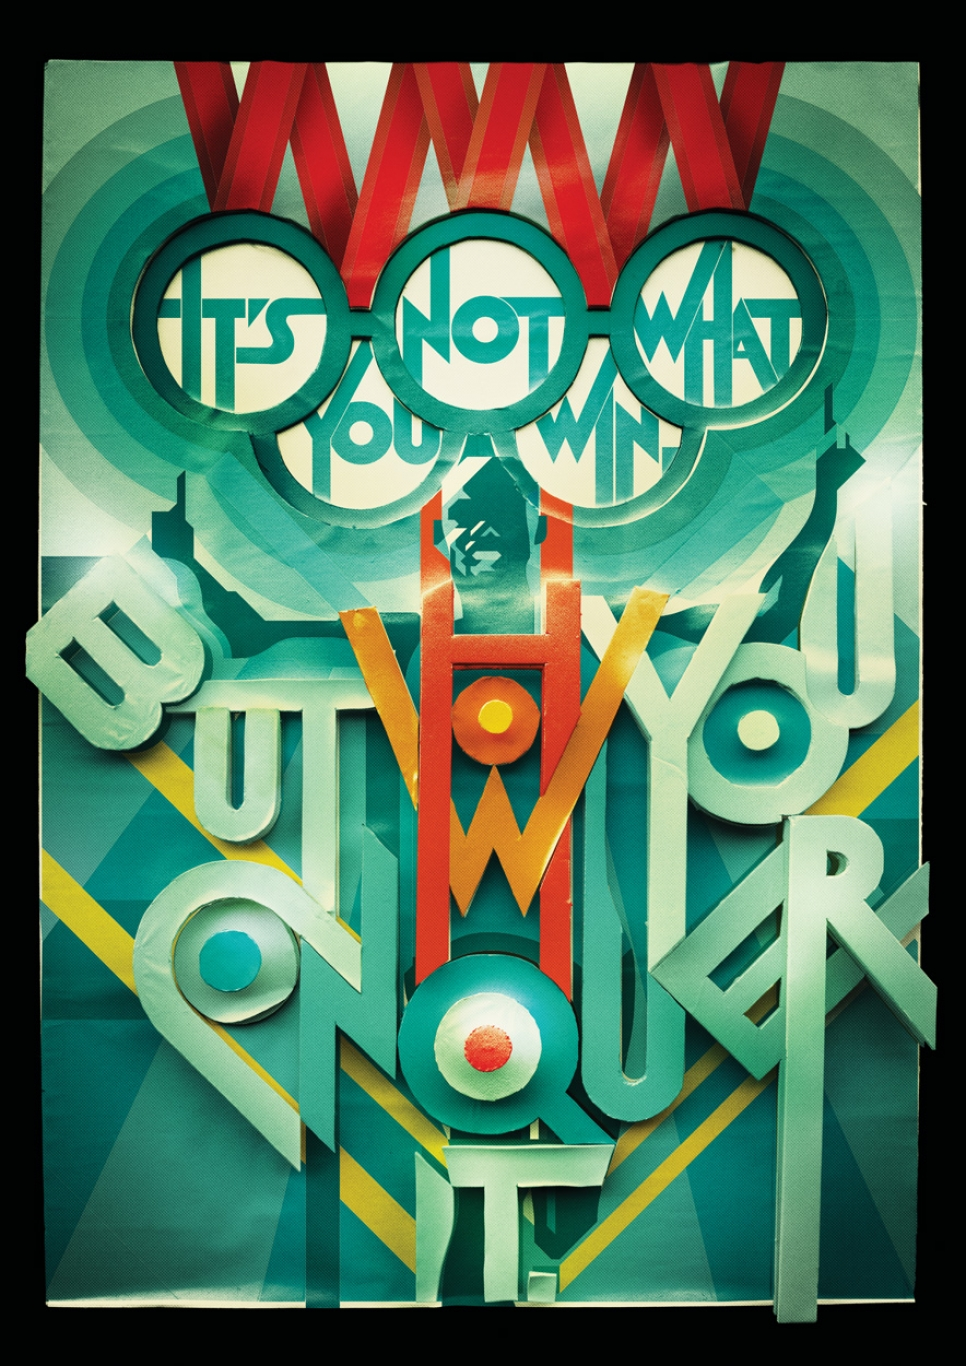 Typographic Games winning poster made by Charles Williams